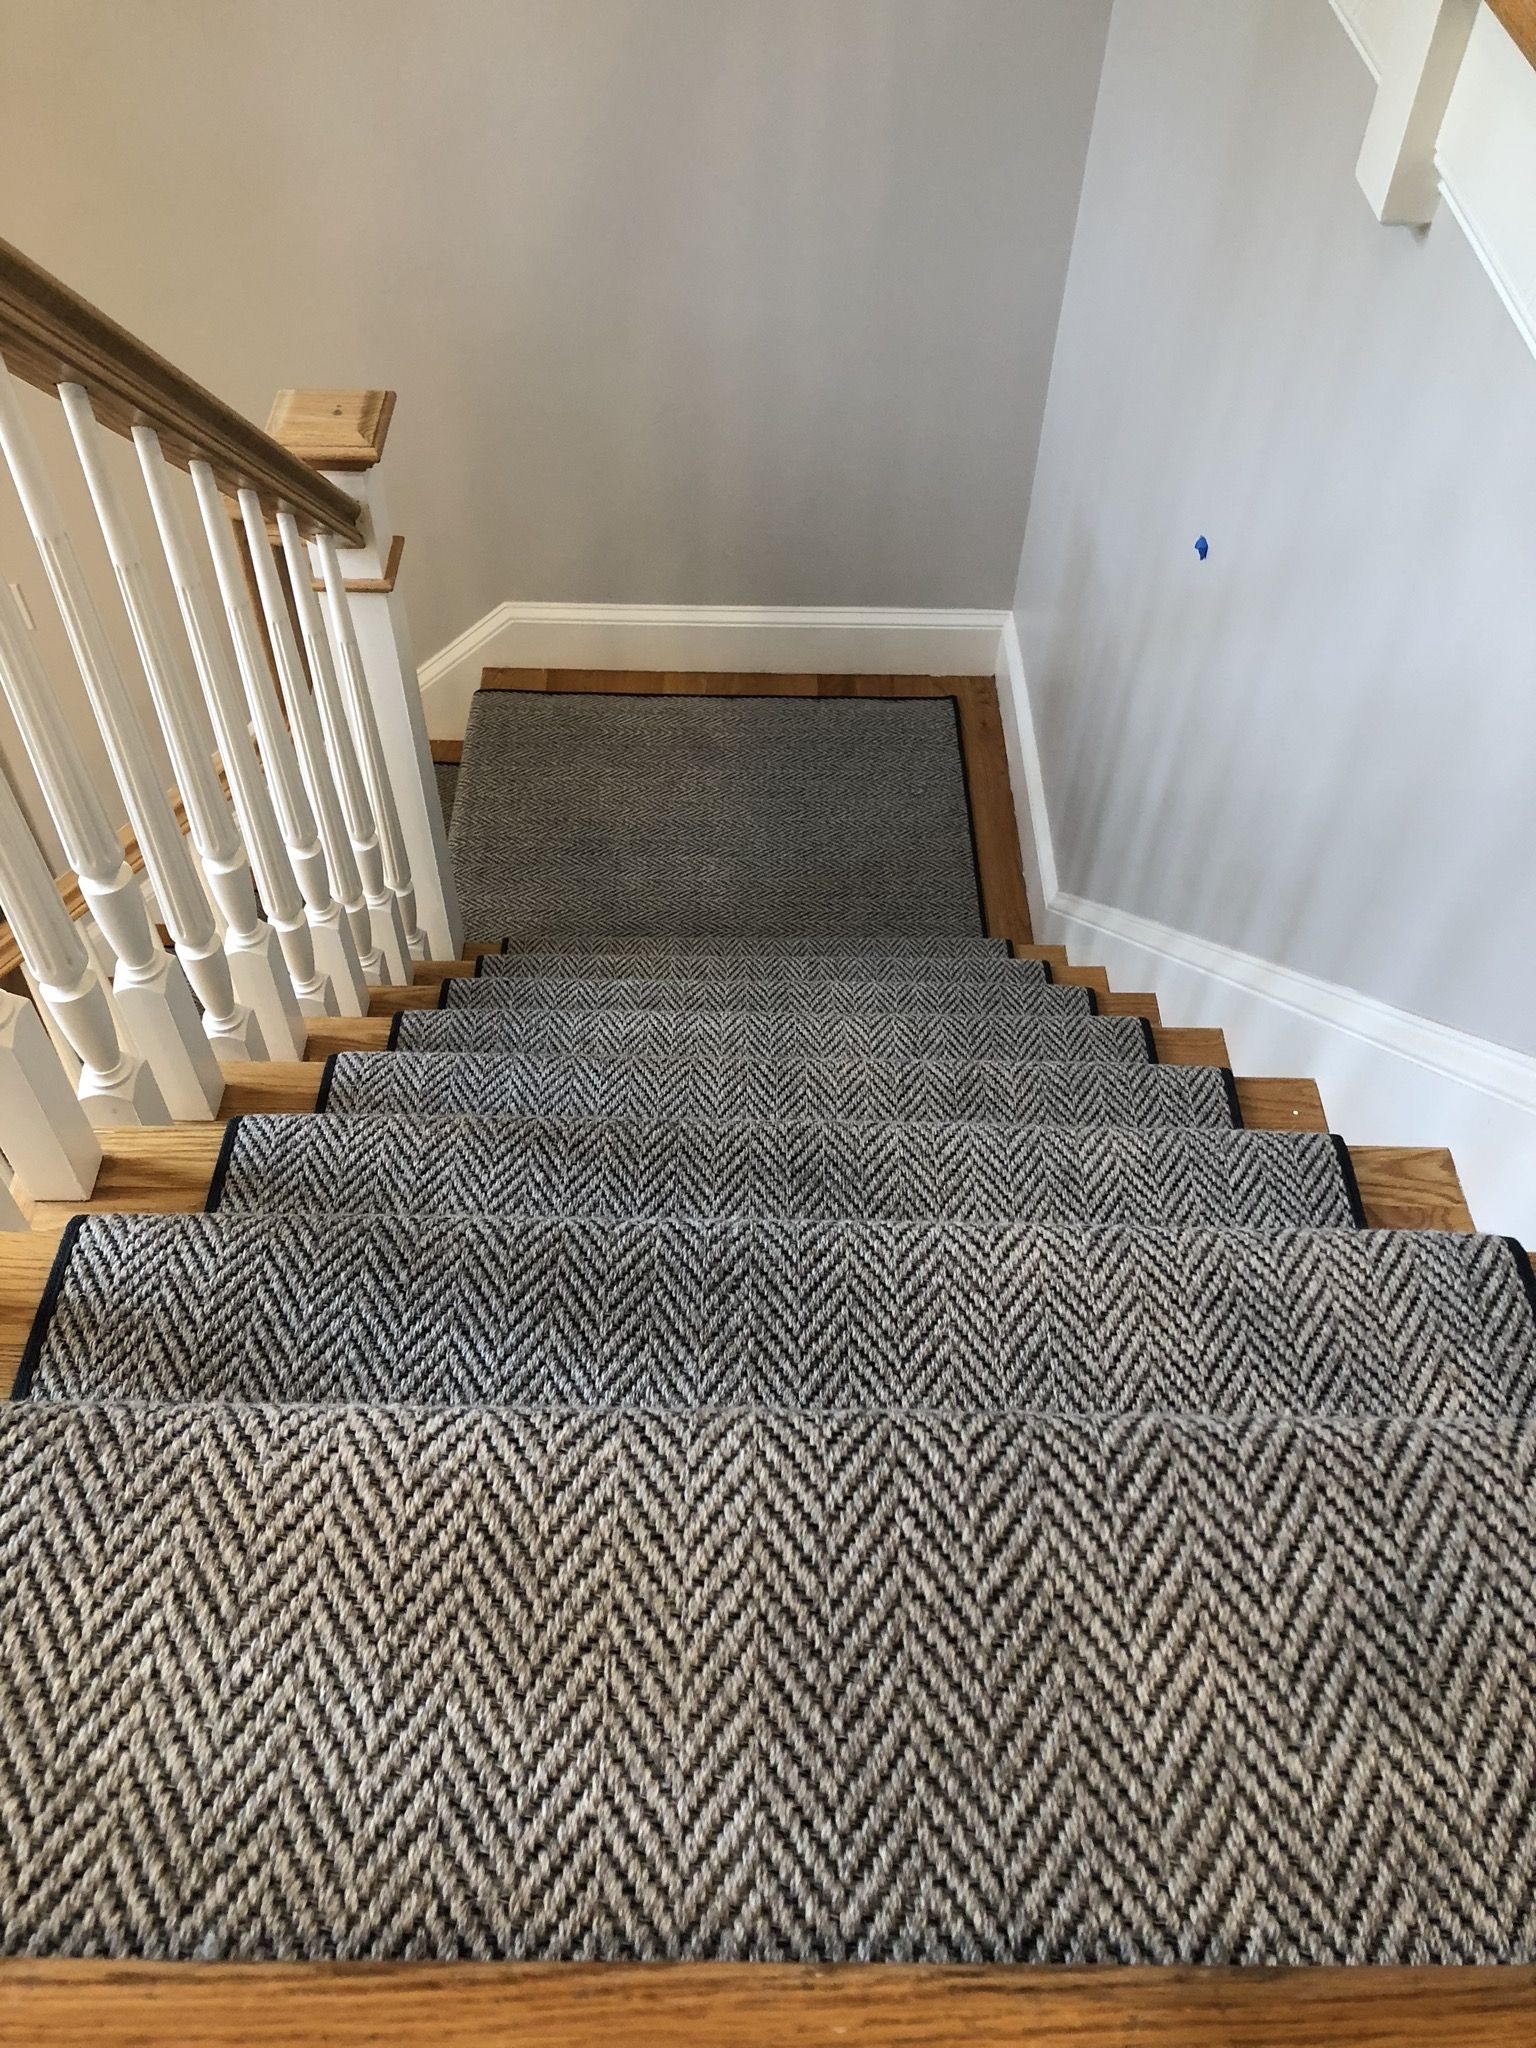 The Best Way To Do Herringbone Runners Heatherly By Momeni The Most Flexible In Style With Multiple Colors Stair Runner Carpet Stair Runner Carpet Staircase